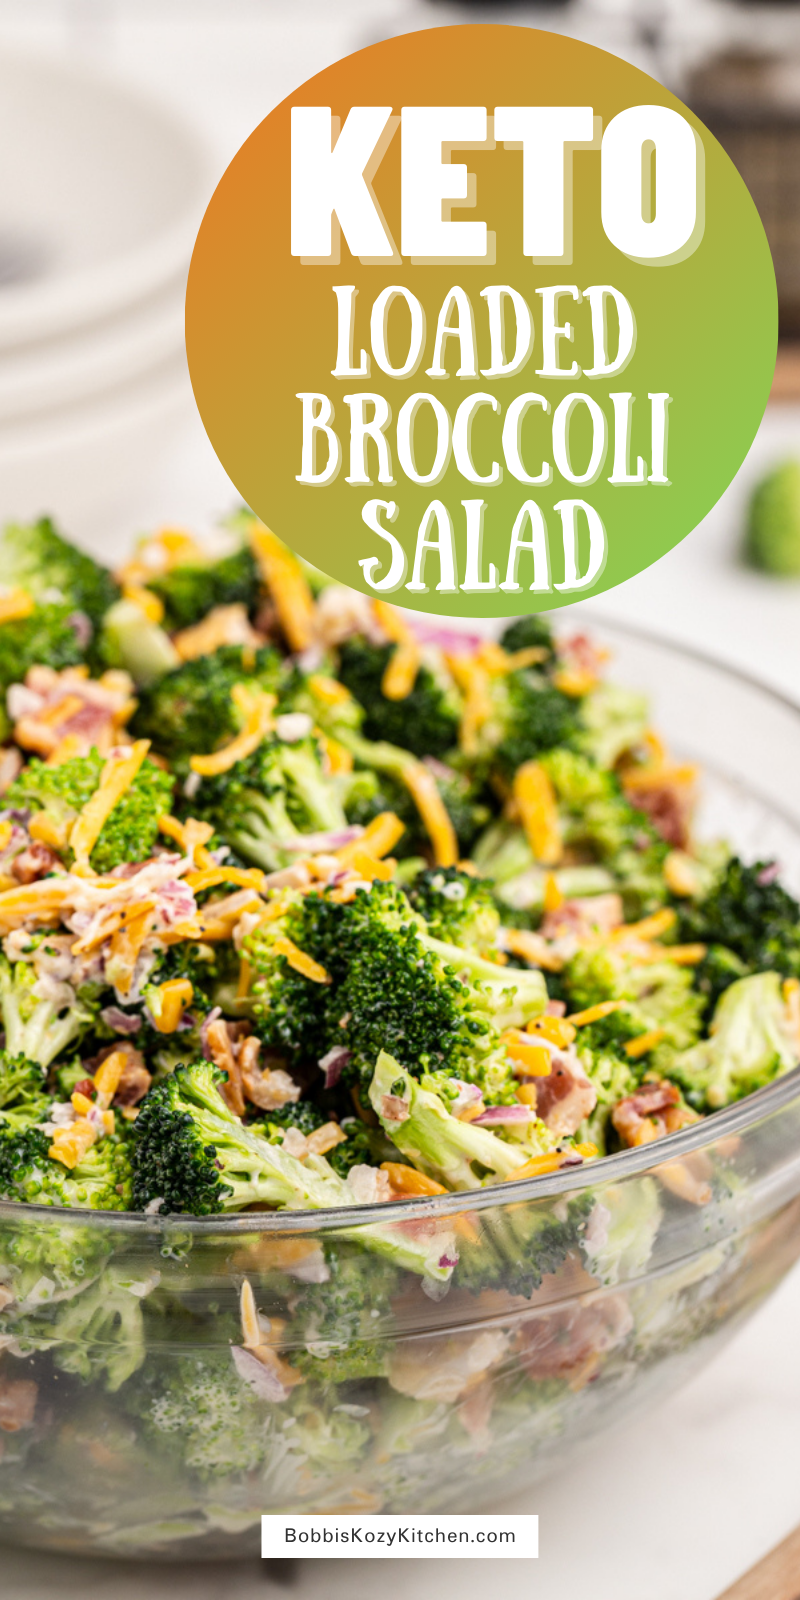 Loaded Broccoli Salad - This Loaded Broccoli Salad is the perfect low carb side dish. This delicious salad is filled with broccoli, bacon, red onion, cheese, and a homemade dressing your family will devour. #lowcarb #keto #broccoli #salad #bacon #cheese #onion